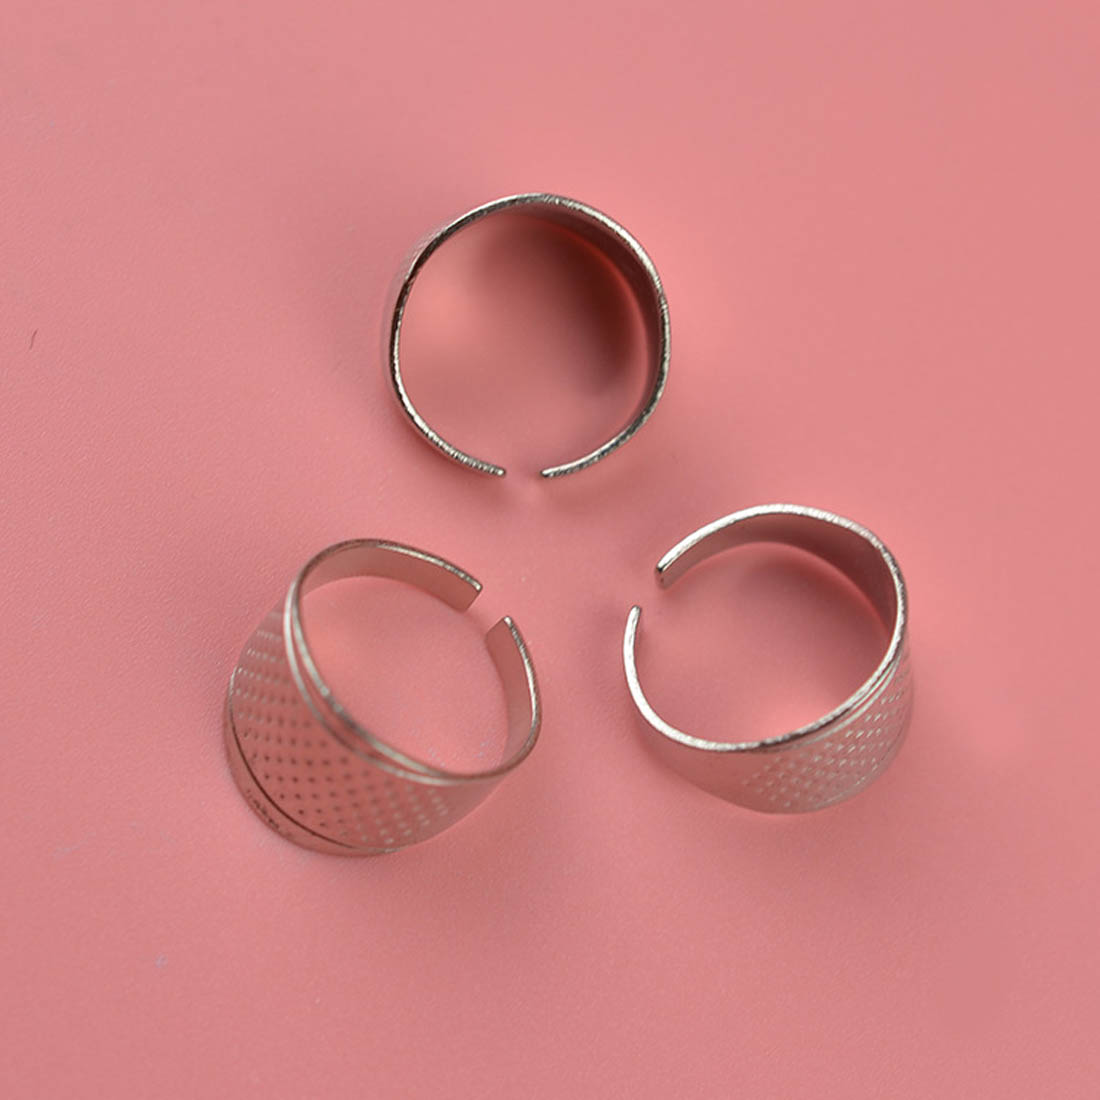 Cool 2Pcs Household Sewing Diy Tools Silver Ring Thimble Finger ...